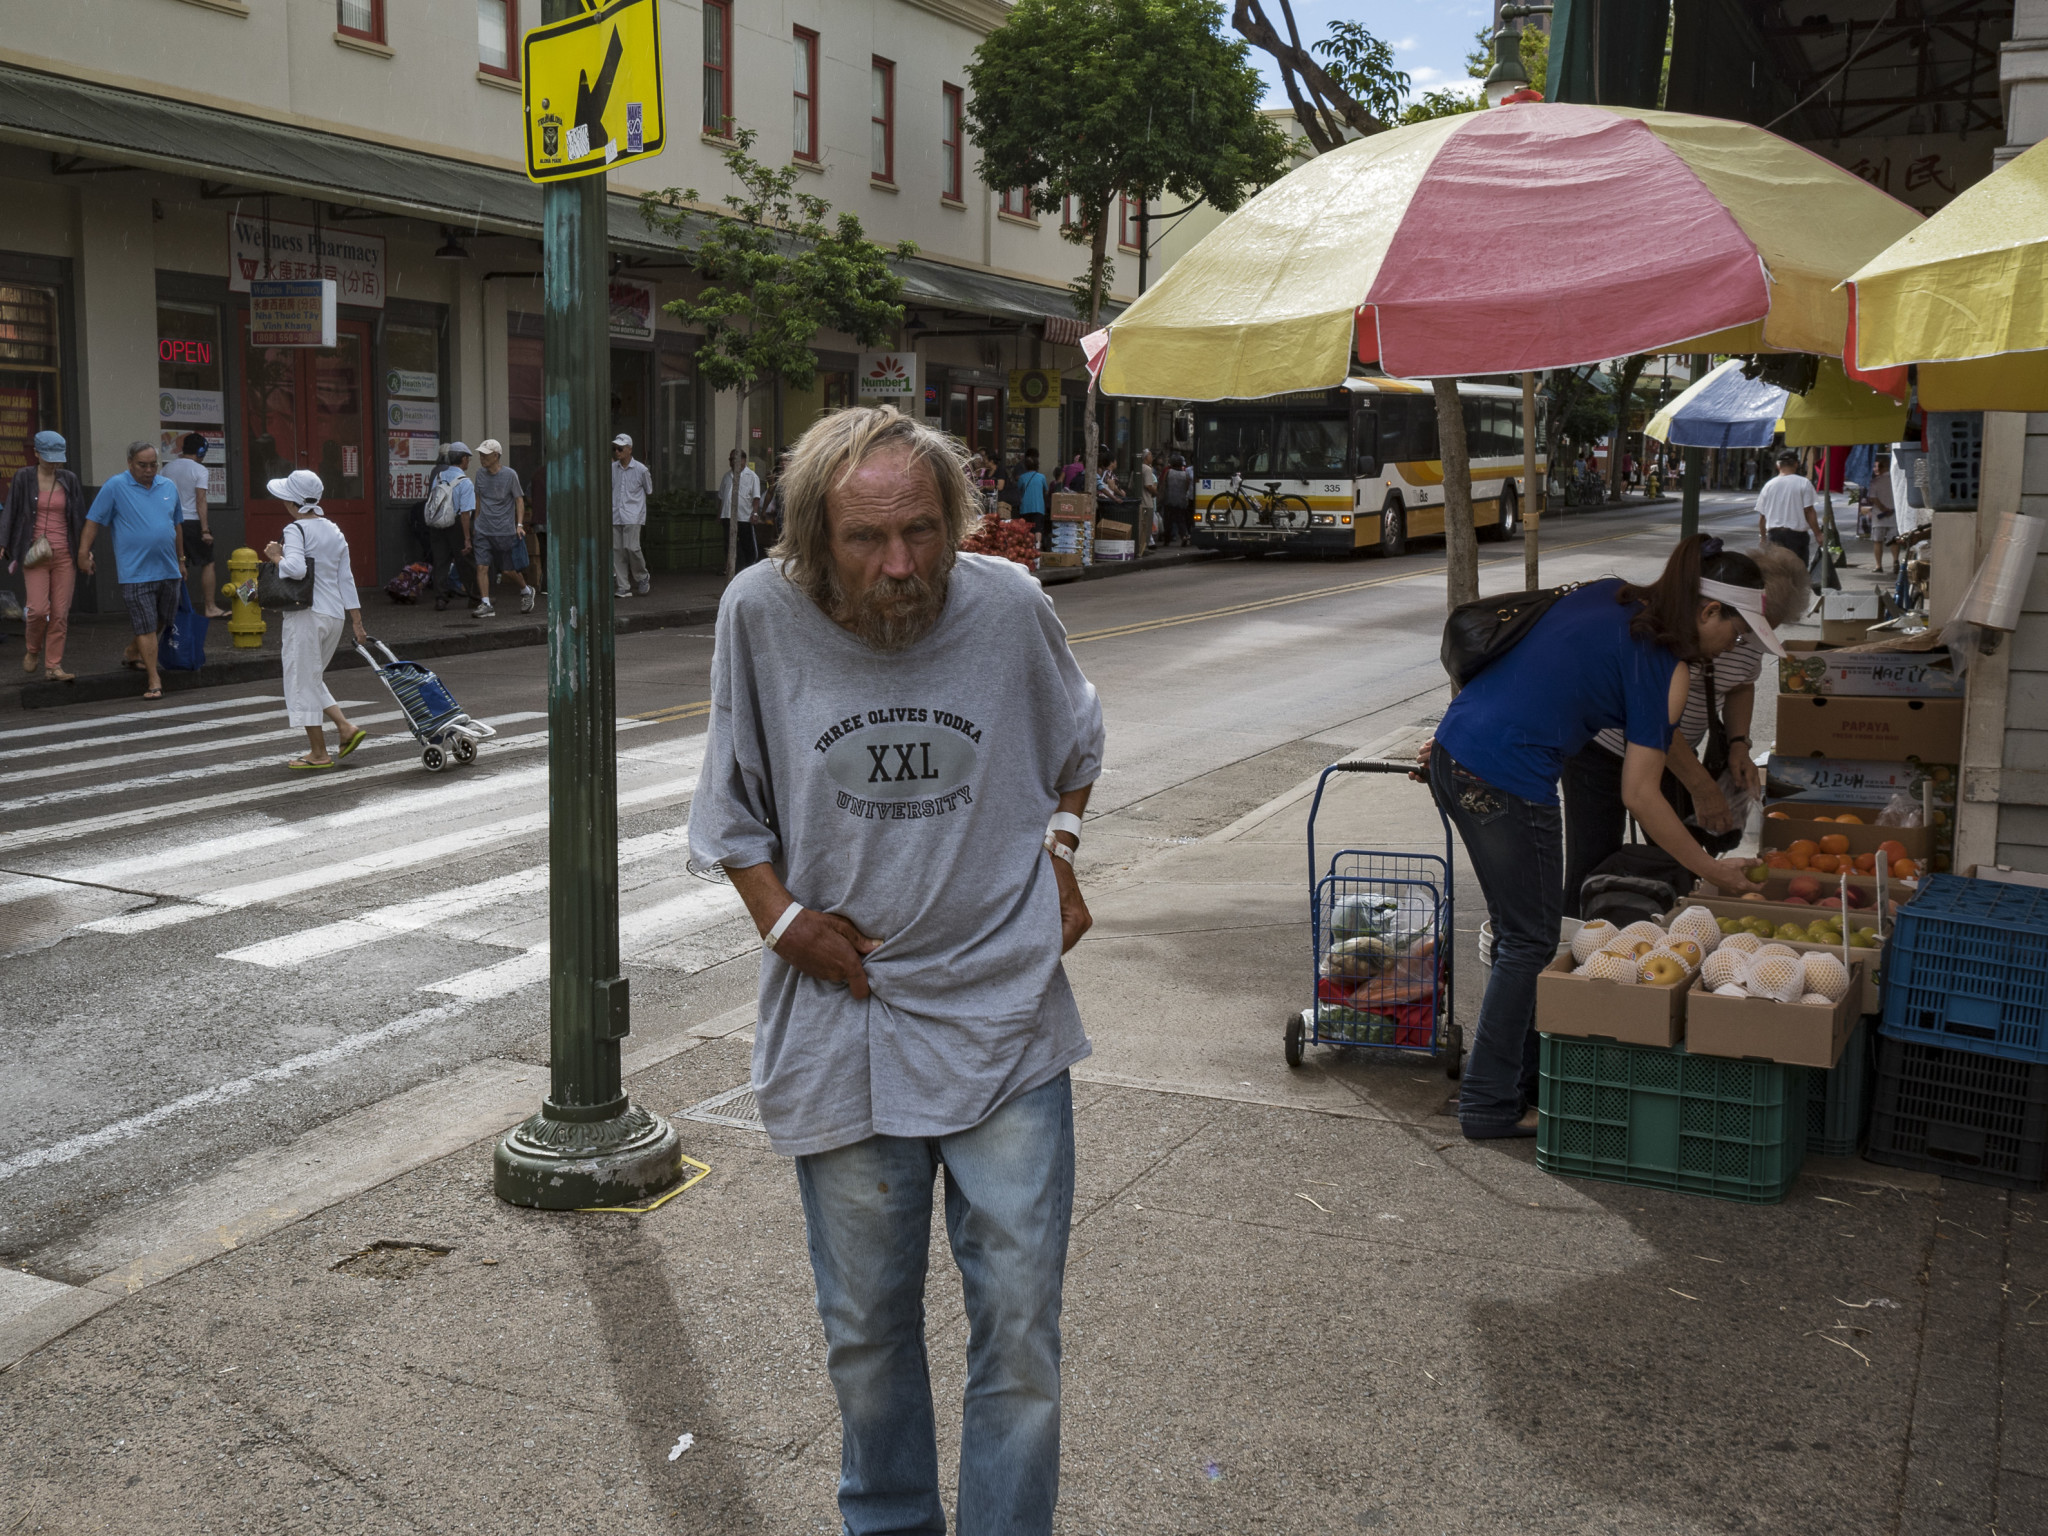 <p>Homeless people are plentiful on the Chinatown streets.</p>